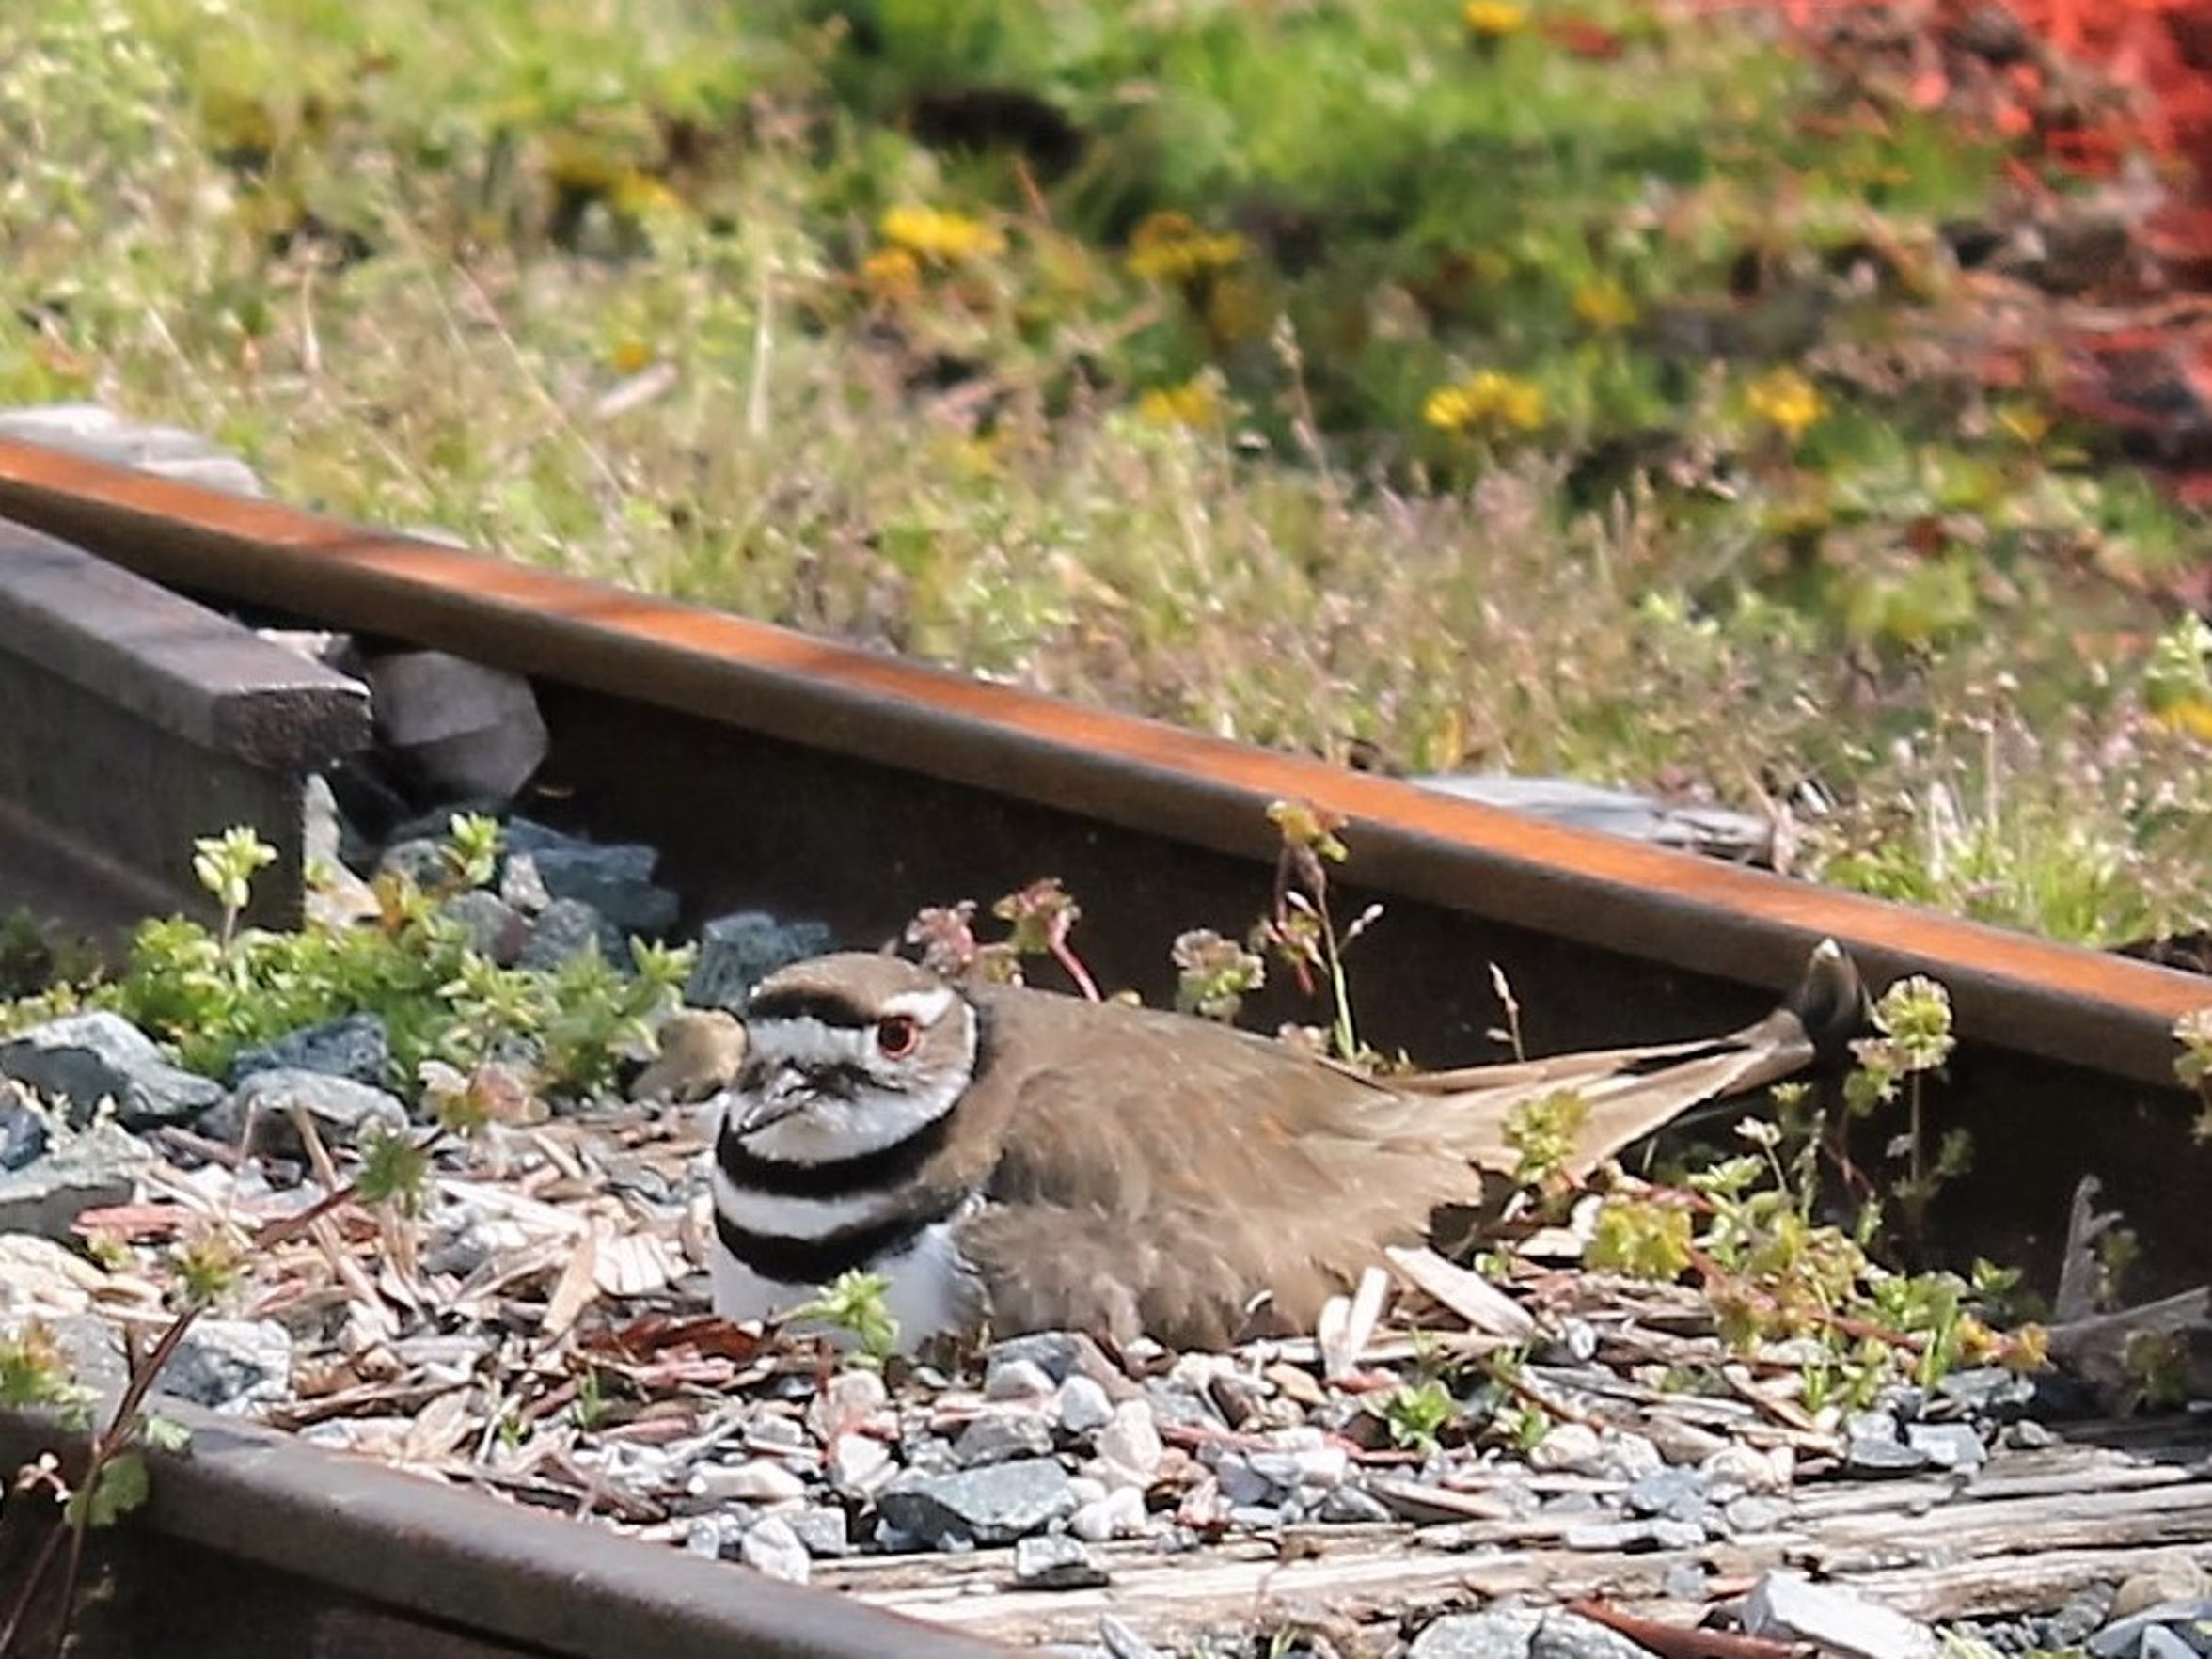 Milton's Public Works Department recently had to set up yellow caution tape to protect a tiny killdeer bird that made its nest in the railroad tracks at Milton's Memorial Park. The bird is not an endangered species, but it is protected under the Federal Migratory Bird Treaty Act of 1918. The bird will remain on the tracks for about 30 days until its eggs hatch, and then will likely move on to a wetland area to feed on insects.